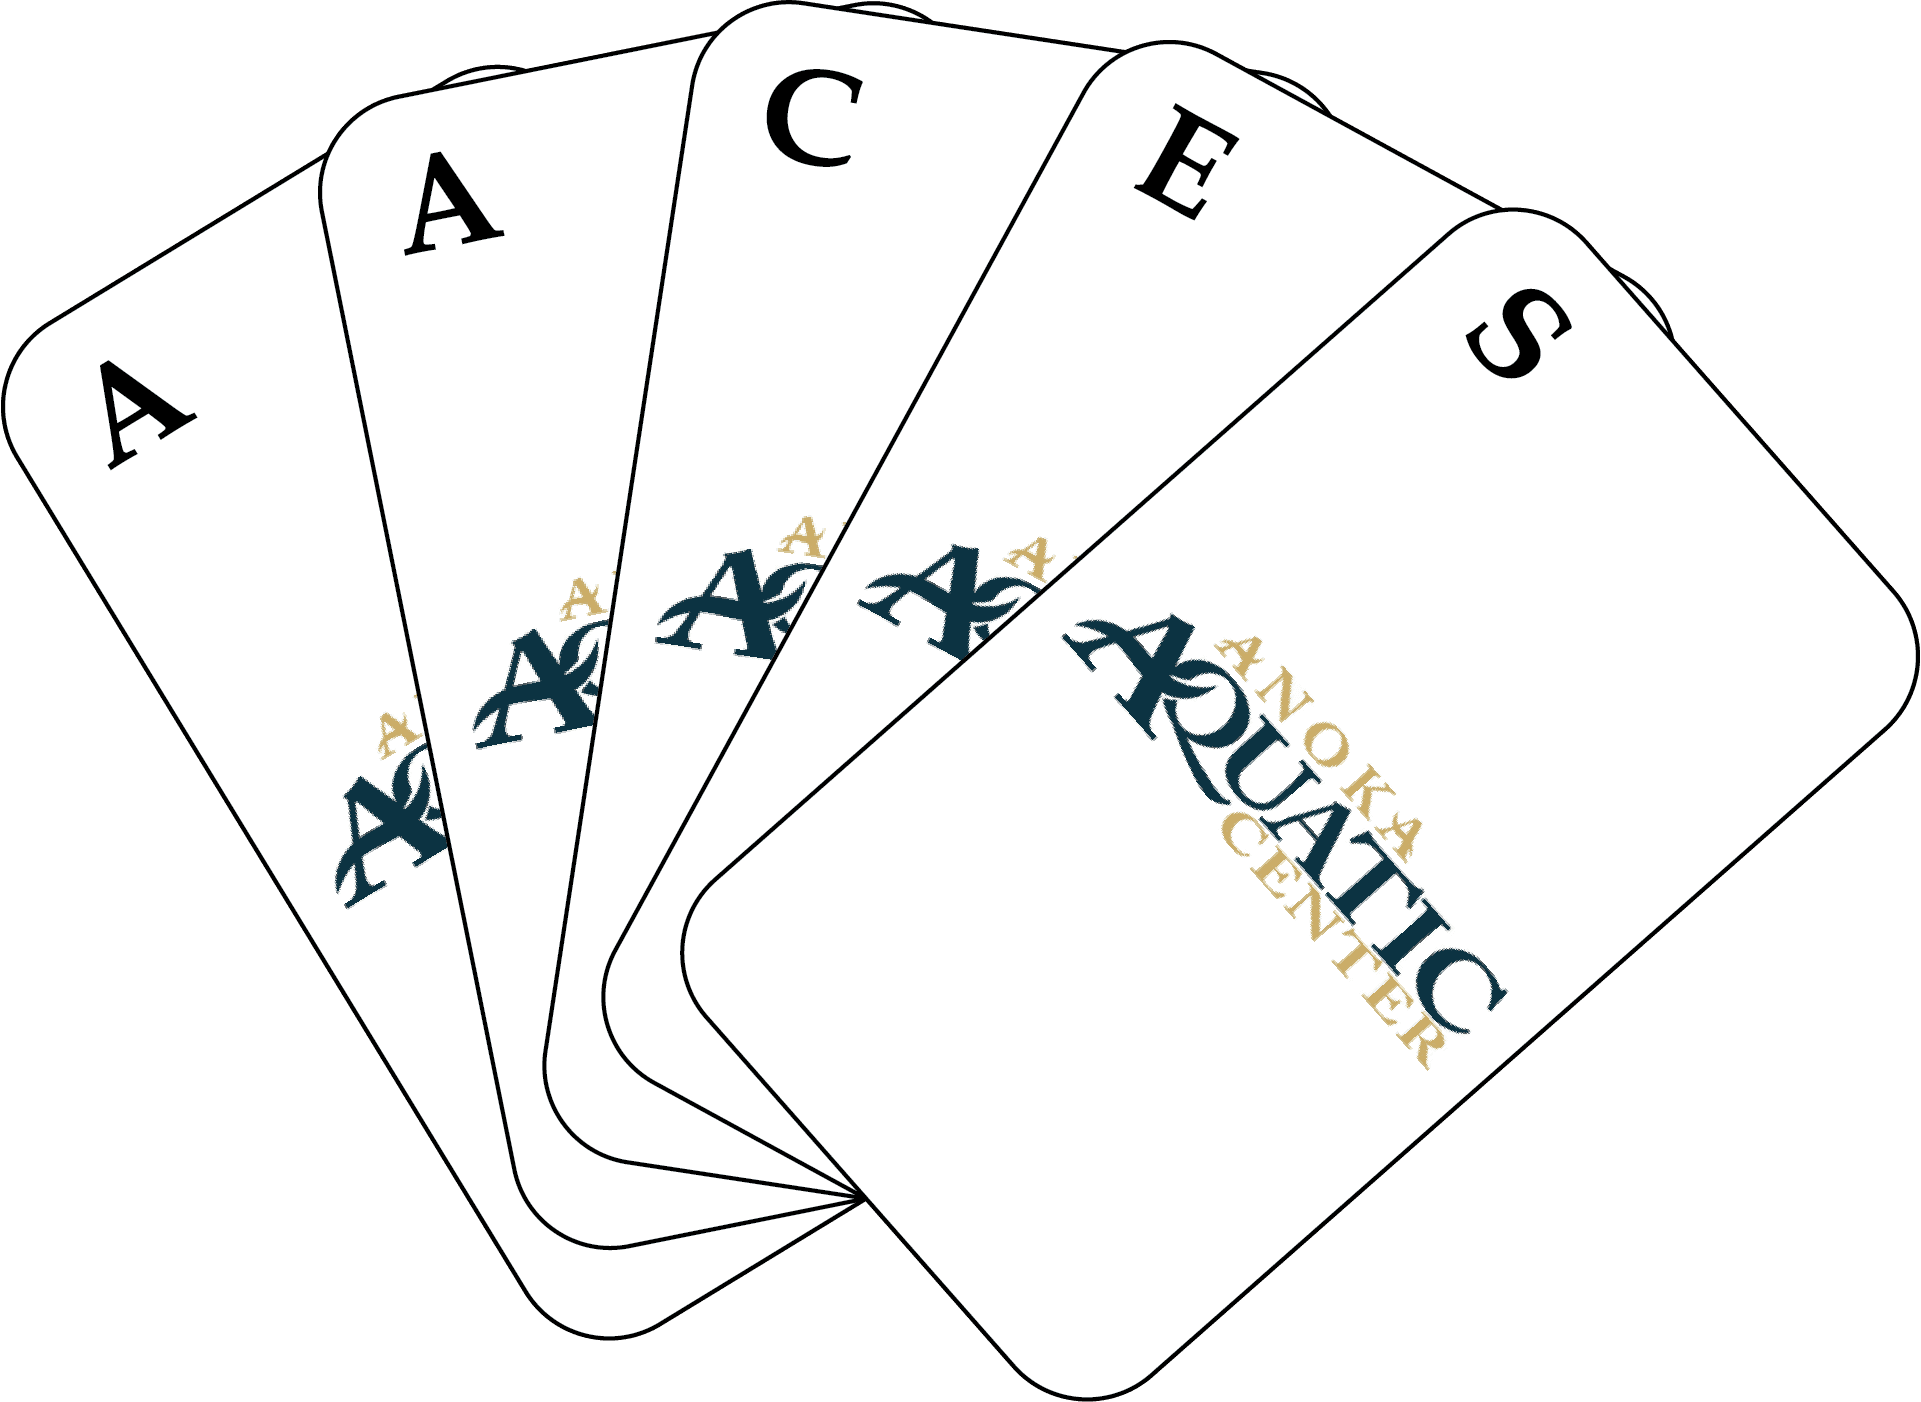 Hand of Cards spelling out AACES